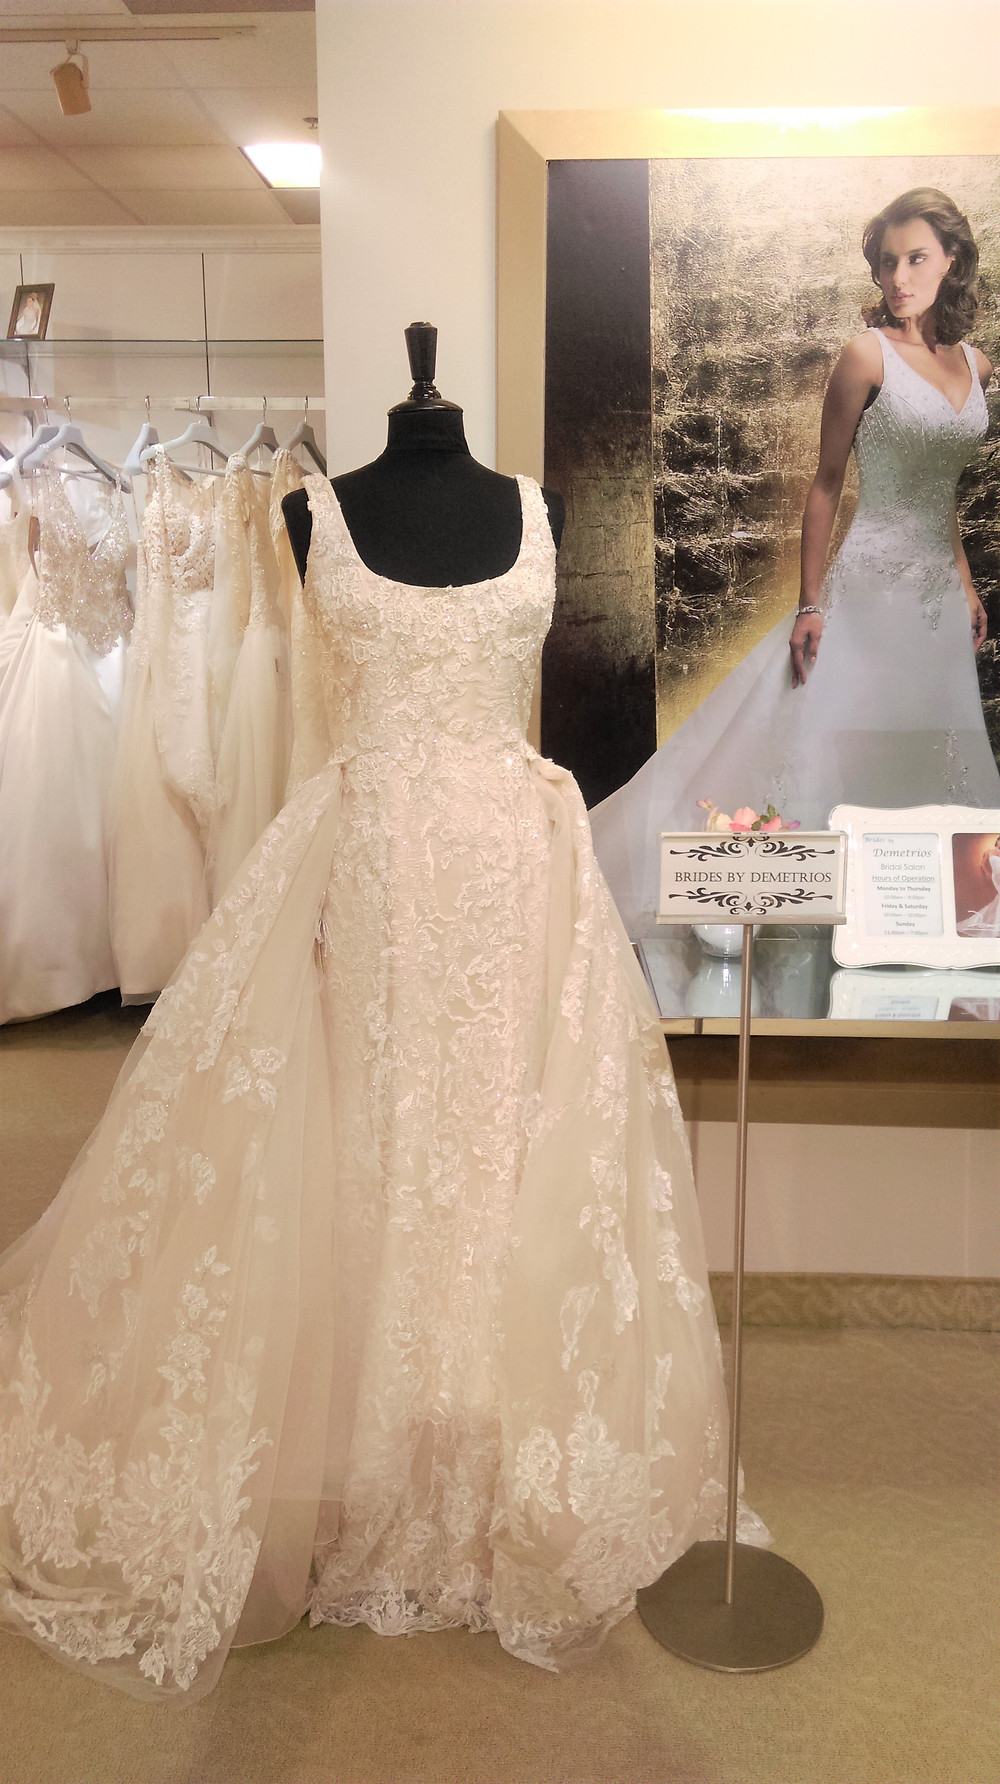 wedding gown in boutique